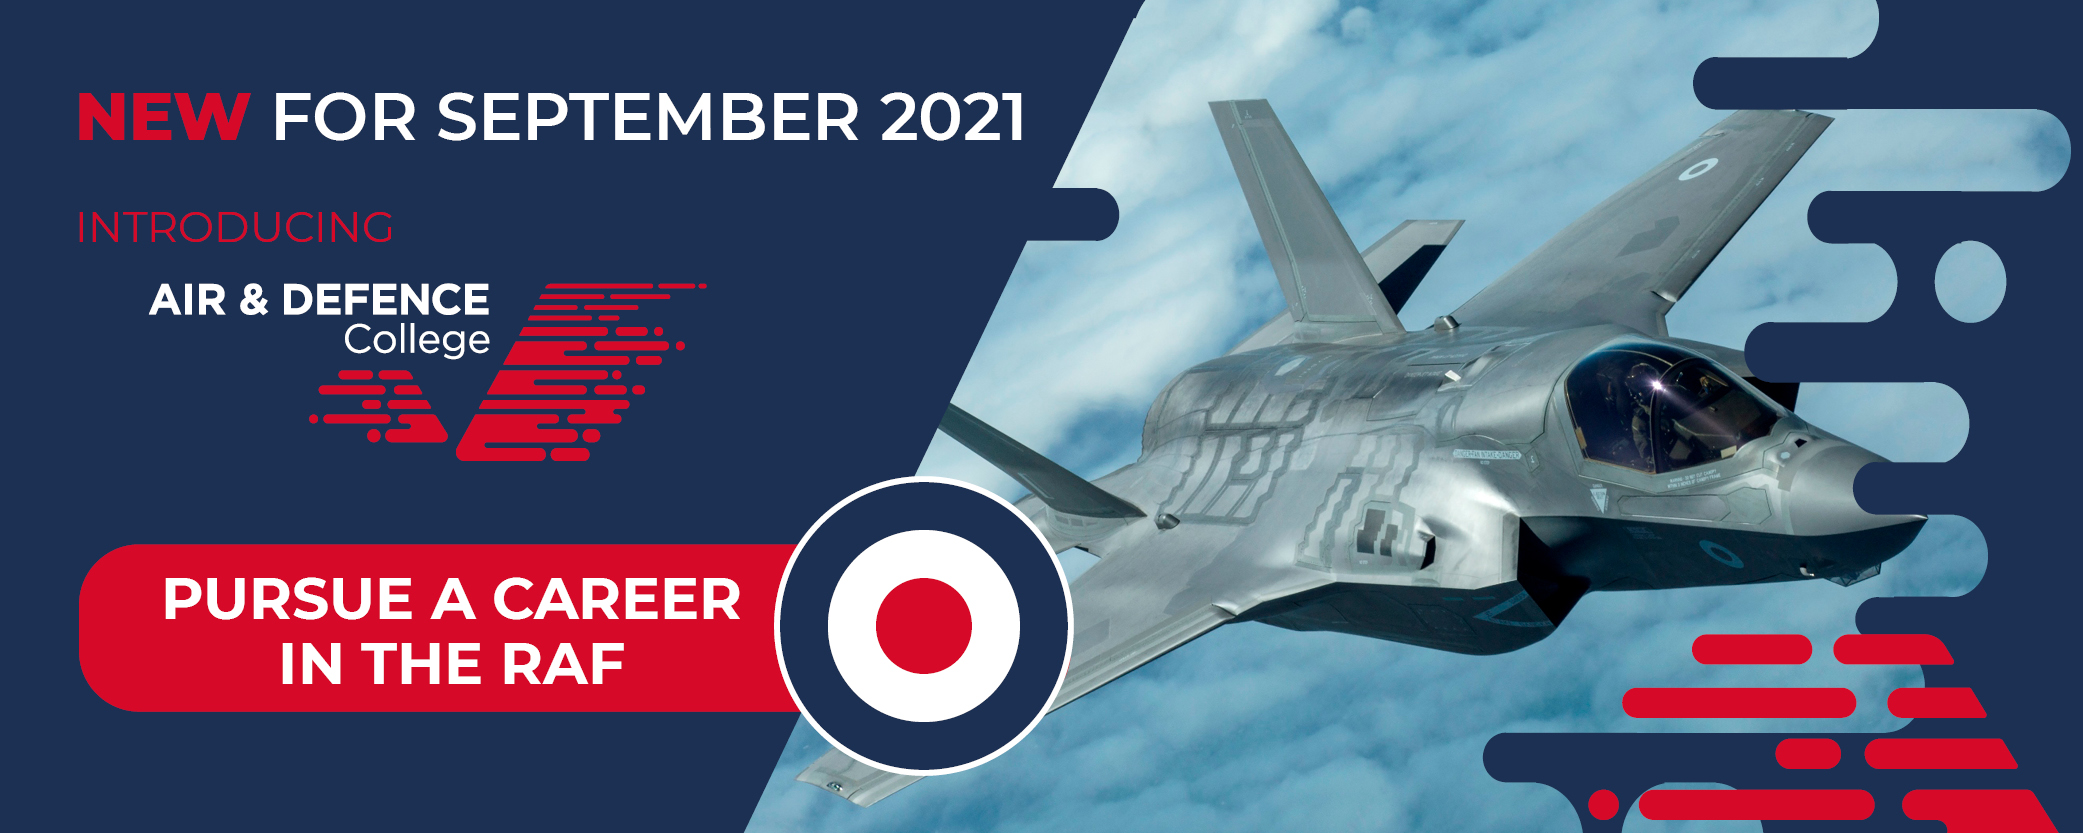 NEW Air & Defence College - Find out more